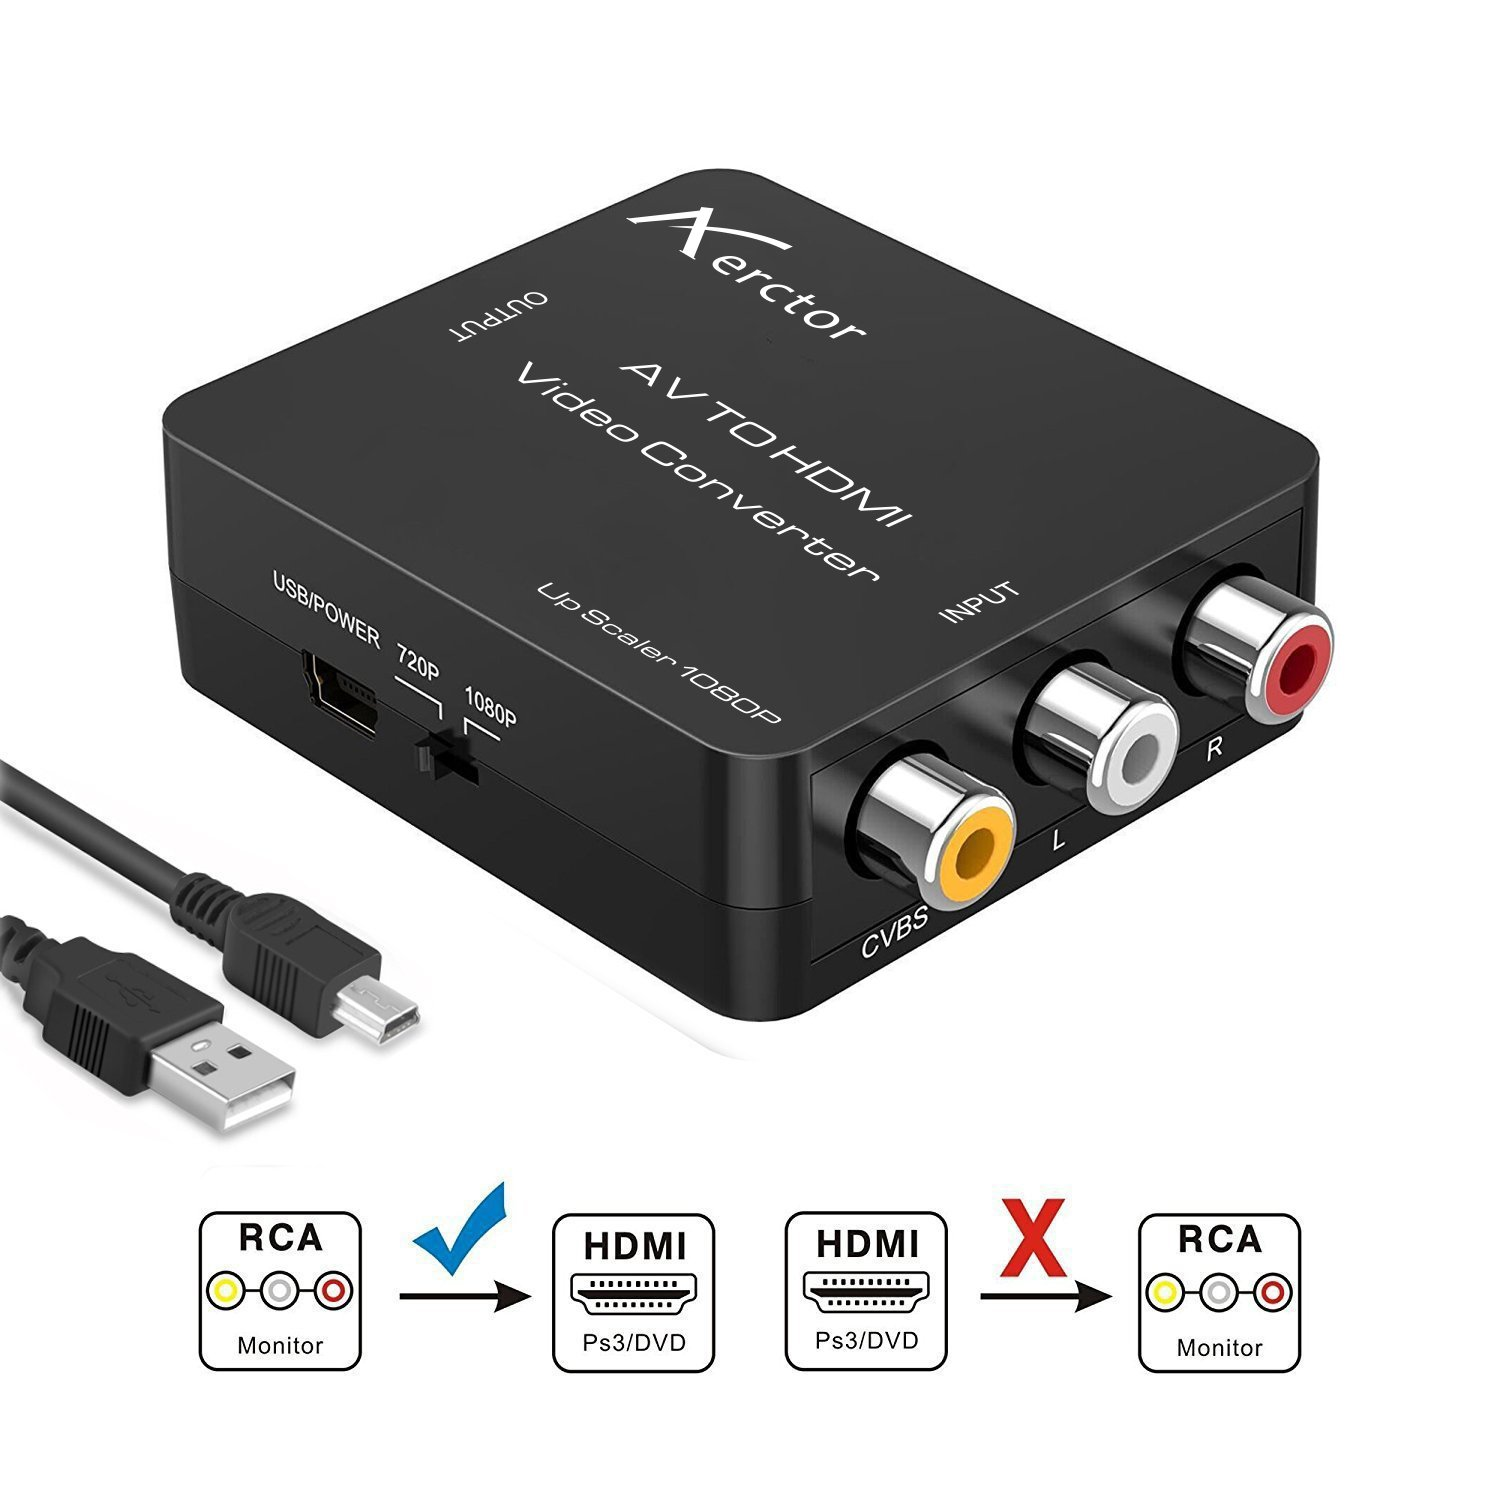 RCA to HDMI Converter,Aerctor 1080P Mini AV Composite CVBS to HDMI Video Audio Converter Adapter Supporting PAL/NTSC USB Charge Cable PC Laptop Xbox PS4 PS3 TV STB VHS VCR Camera DVD,Black